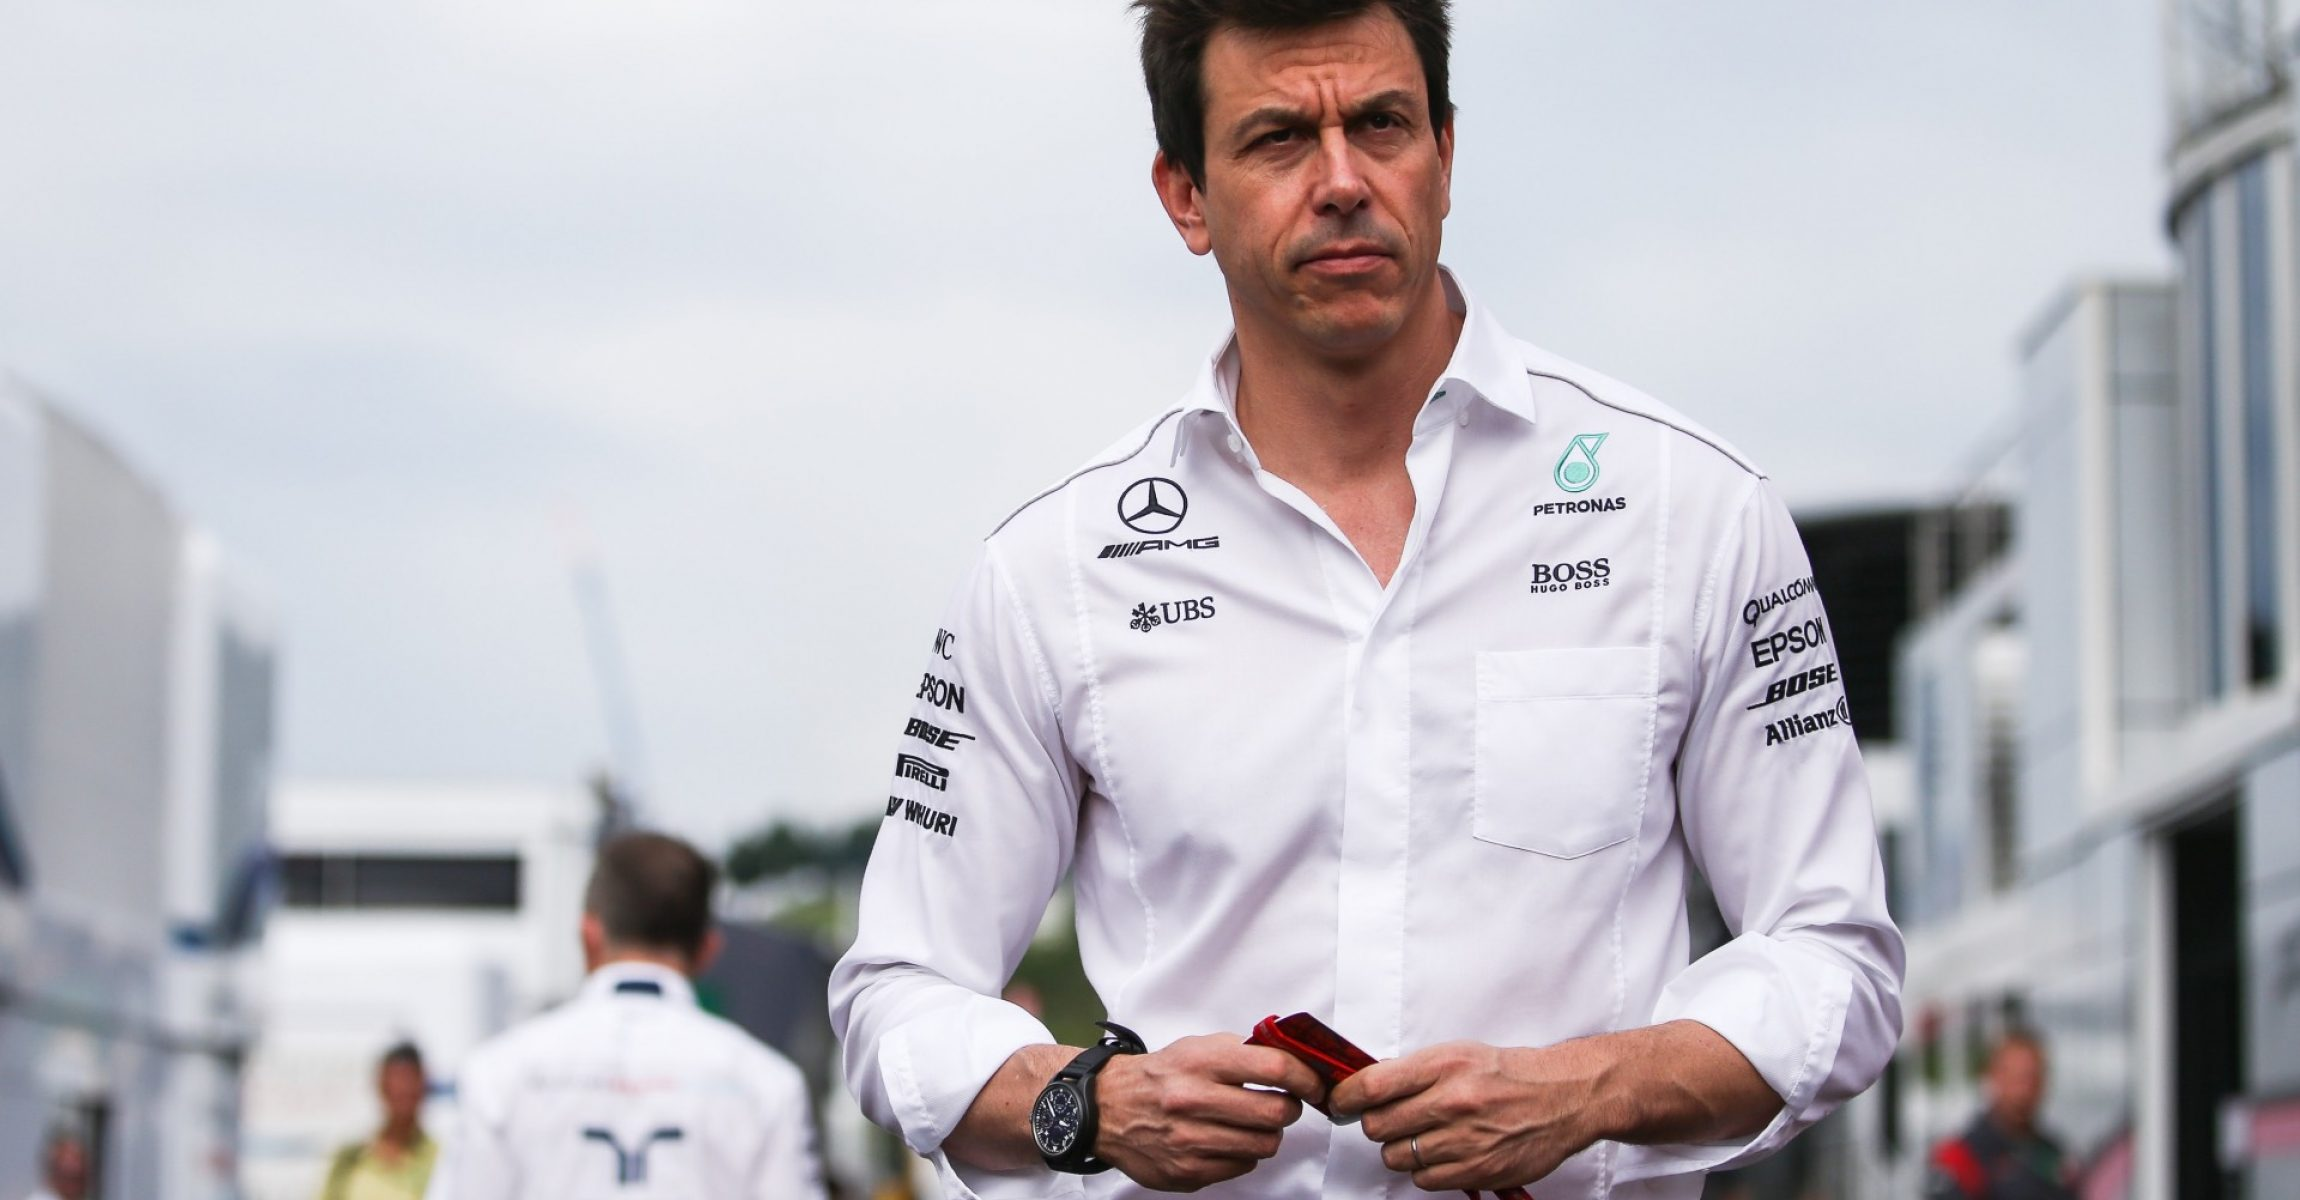 SPIELBERG,AUSTRIA,08.JUL.17 - MOTORSPORTS, FORMULA 1 - Grand Prix of Austria, Red Bull Ring, free practice. Image shows executive director Toto Wolff (Mercedes). Photo: GEPA pictures/ Daniel Goetzhaber - For editorial use only. Image is free of charge.